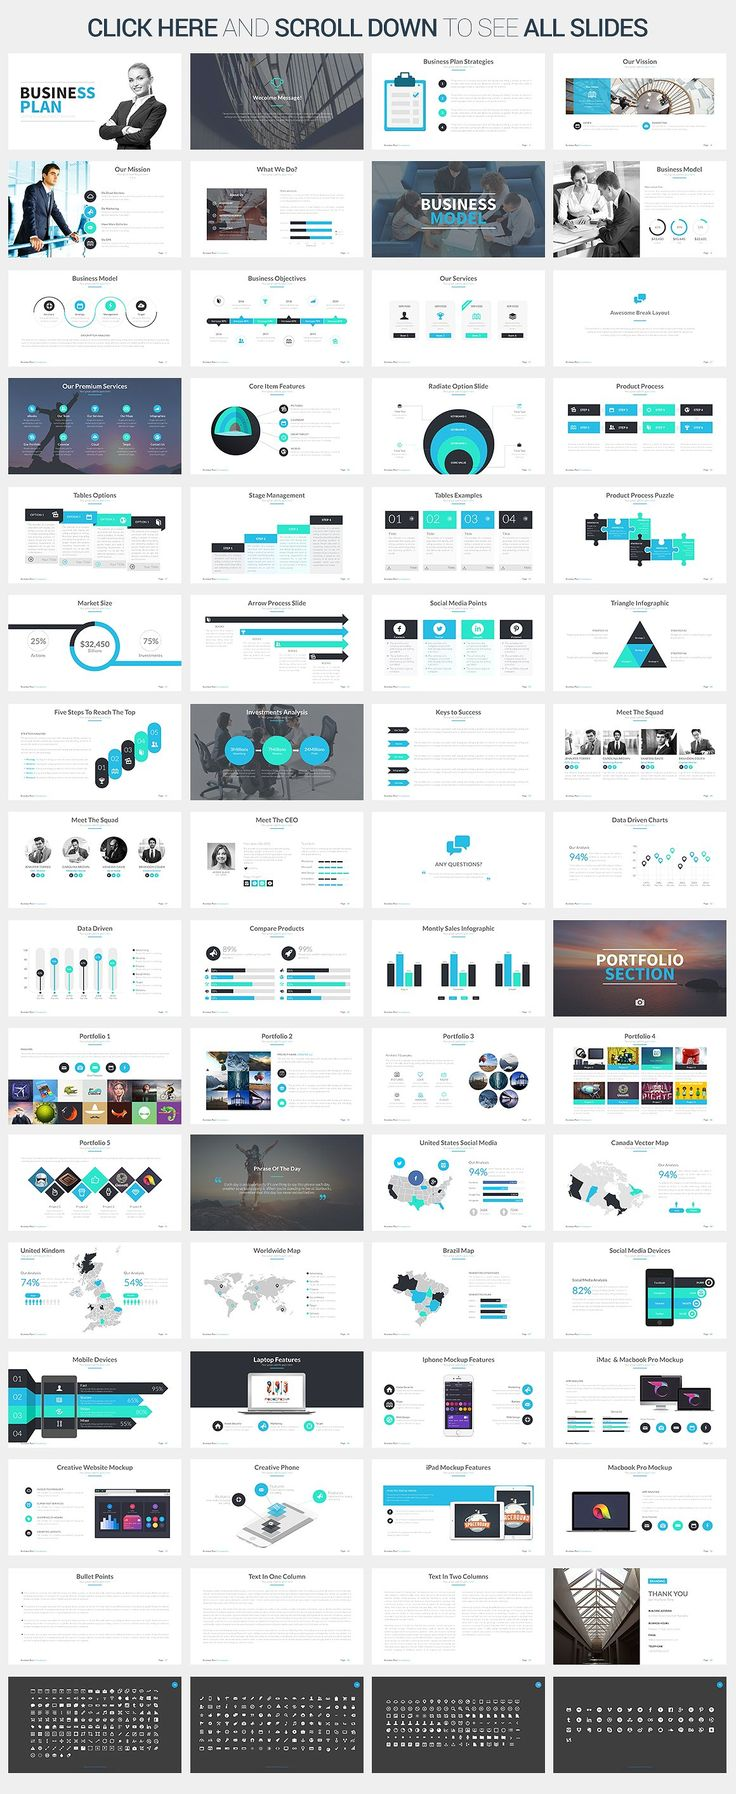 Business Plan Google Slides Template by SlidePro on @creativemarket